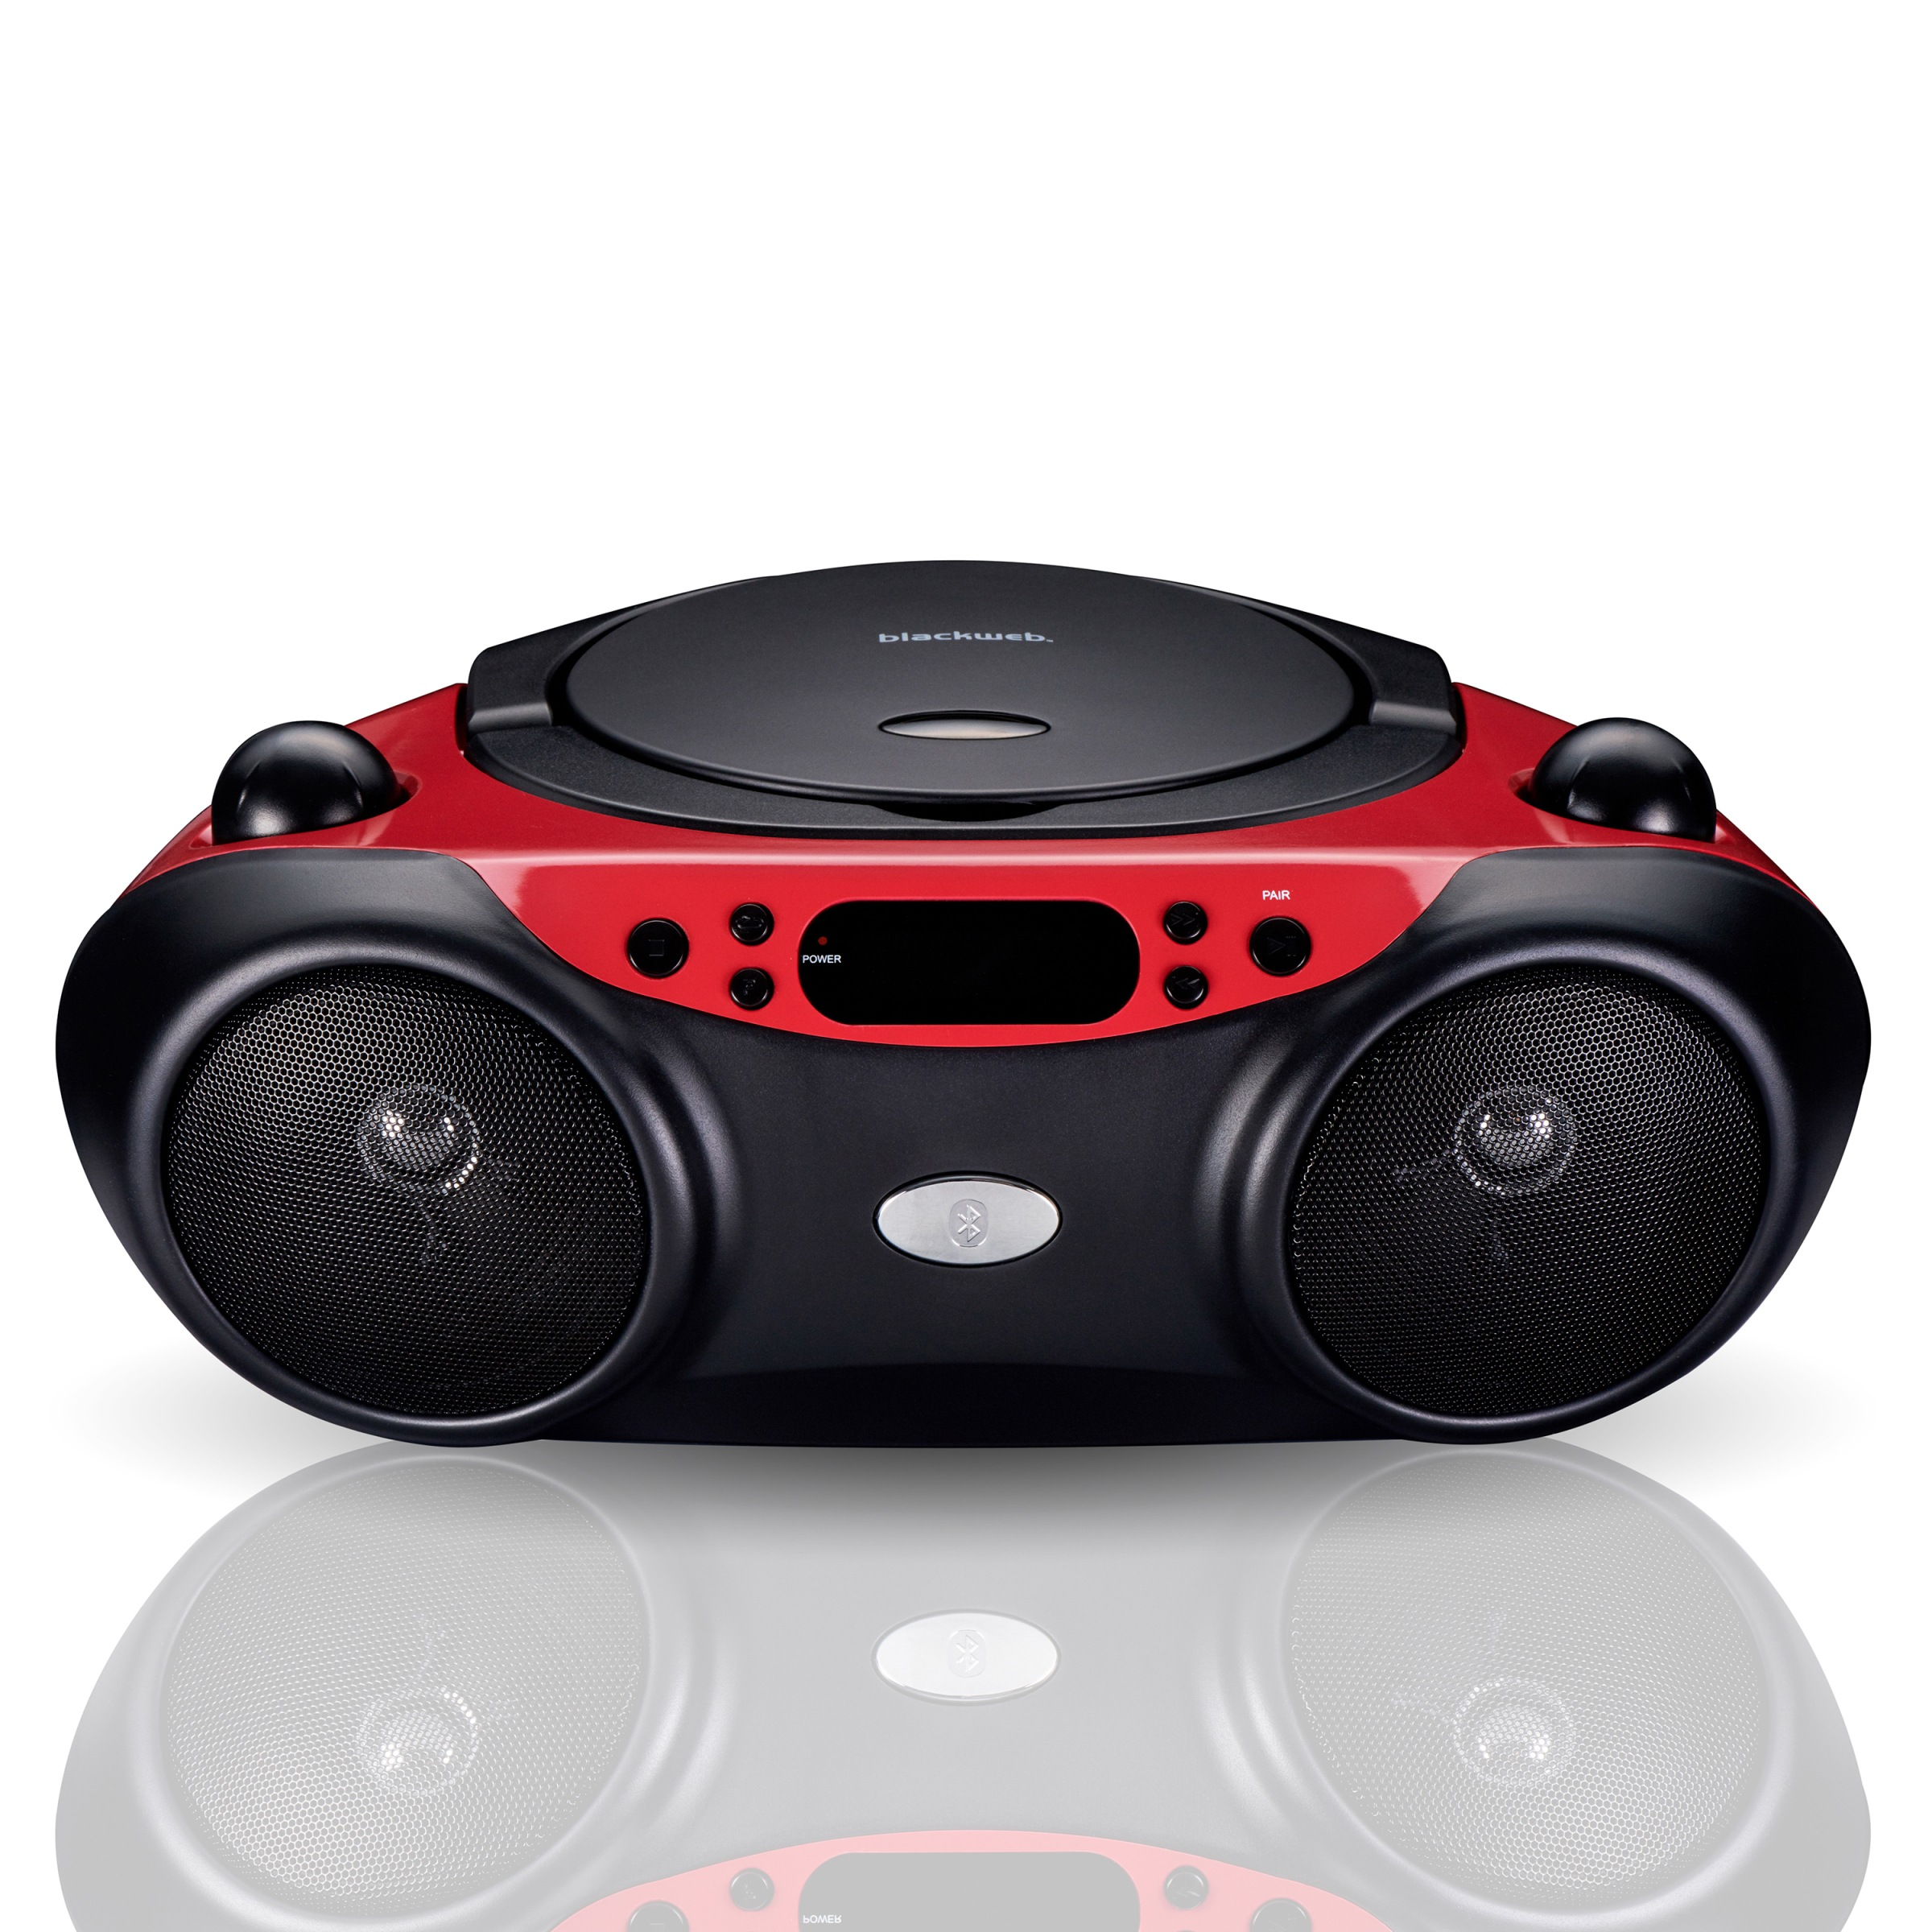 Blackweb Bluetooth CD Player with FM Radio, Red and Black